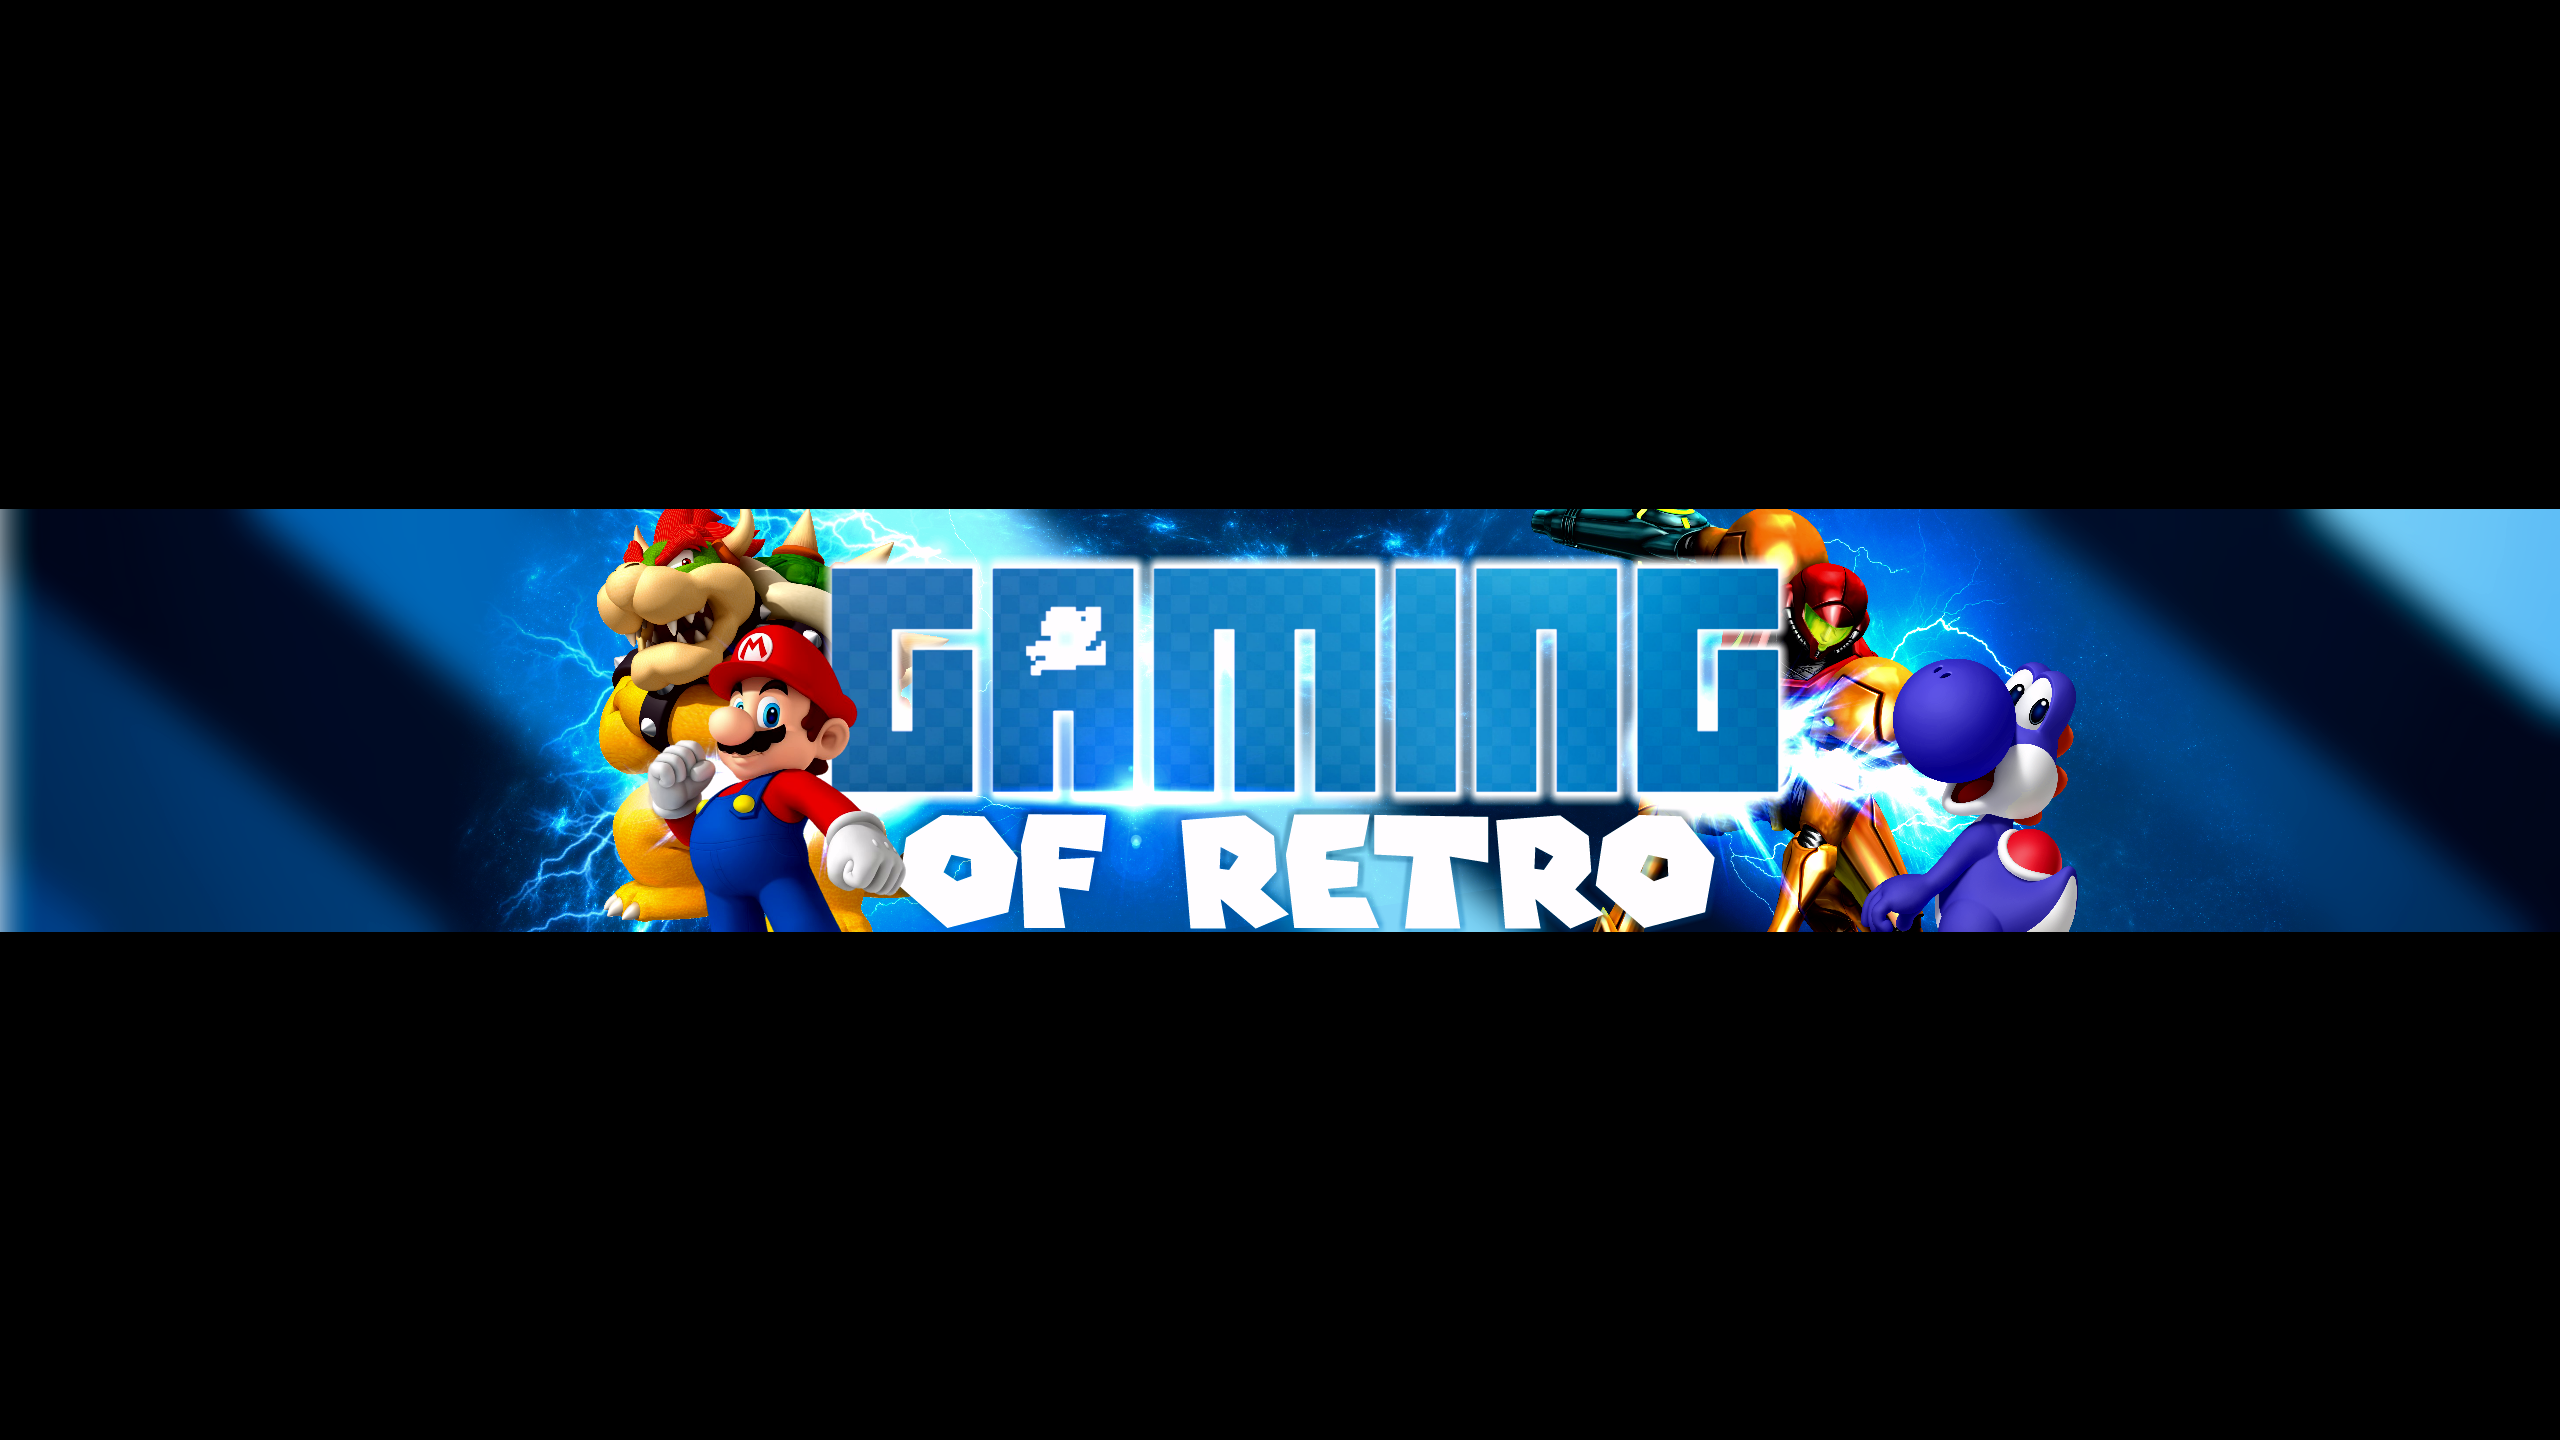 2560x1440 Gaming Wallpaper For Youtube Channel